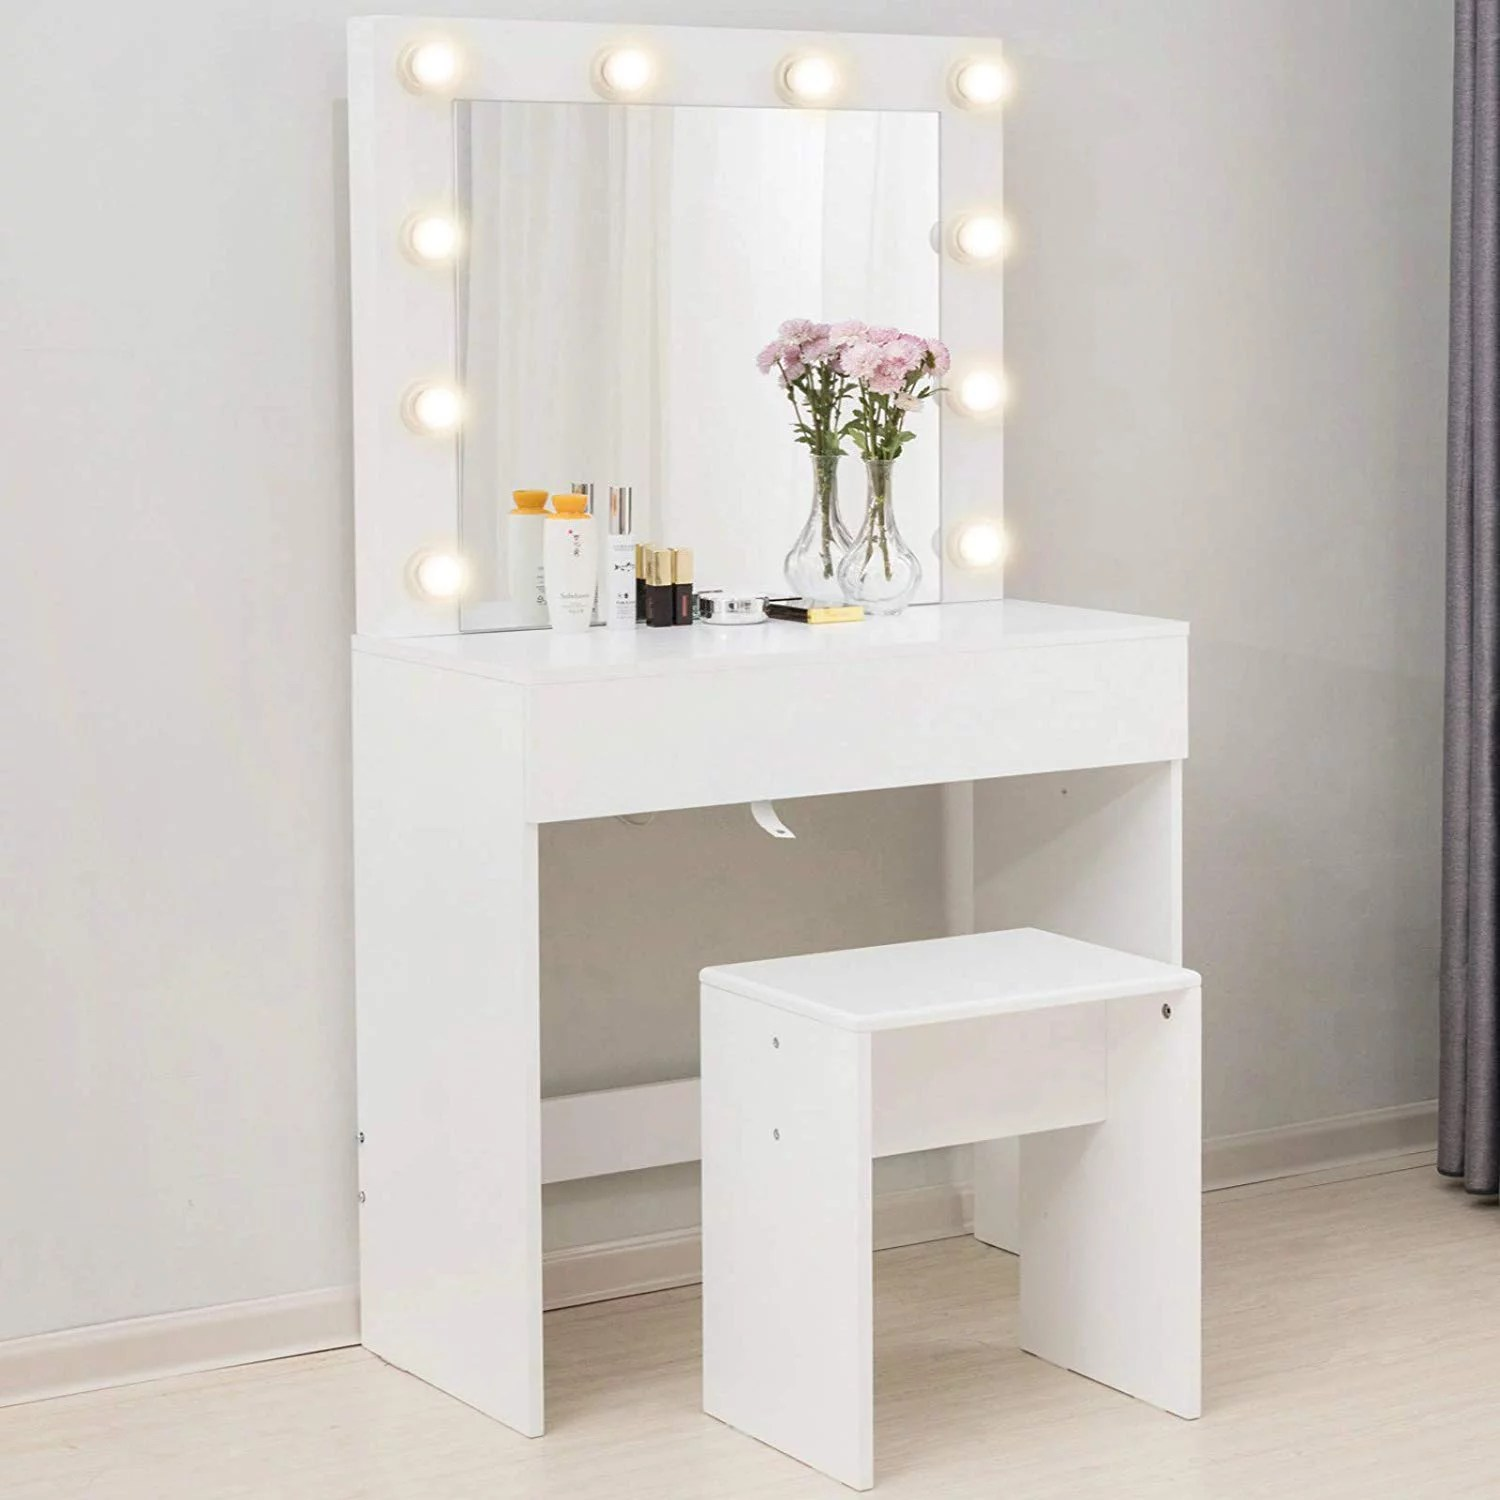 mecor makeup vanity table w 10 led lights mirror vanity set with stool drawer wood dressing table bedroom furniture girls women gifts white